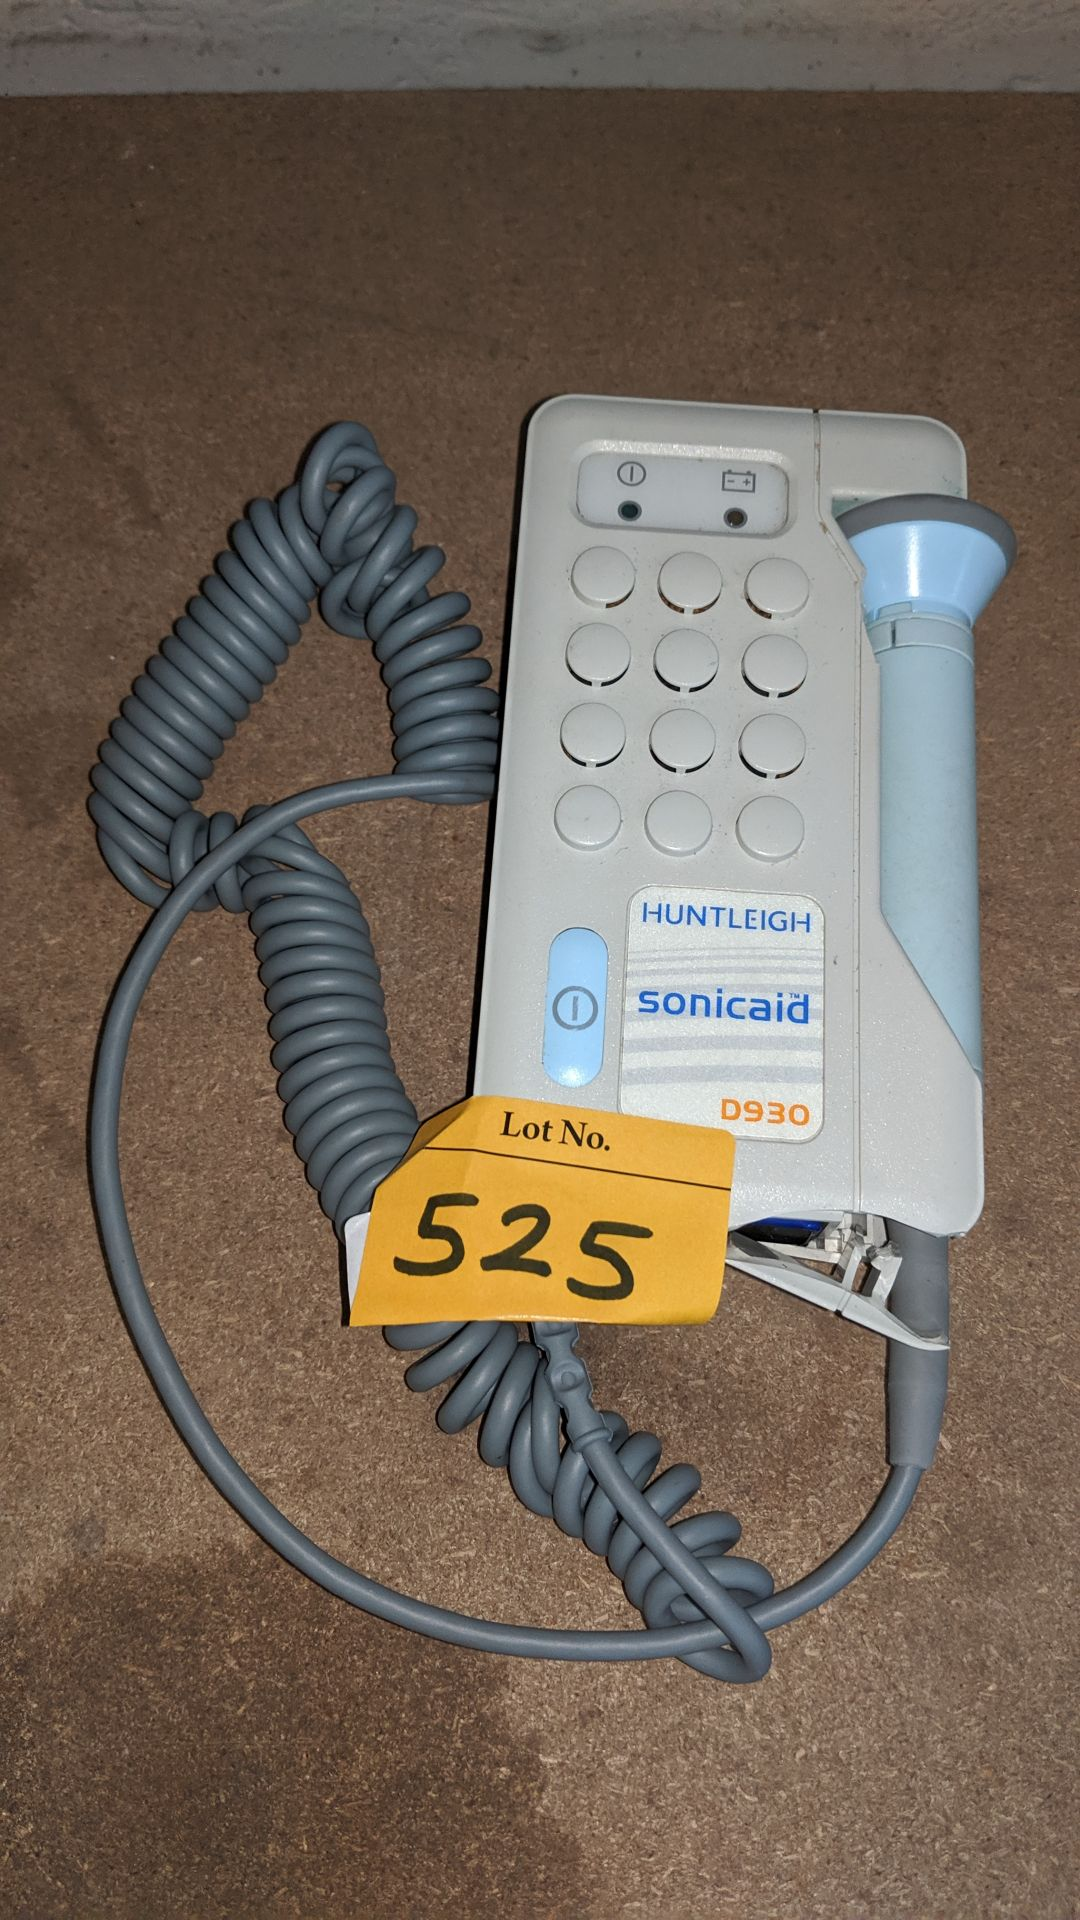 Lot 525 - Huntleigh Sonicaid model D930 Fetal Doppler . This is one of a large number of lots used/owned by